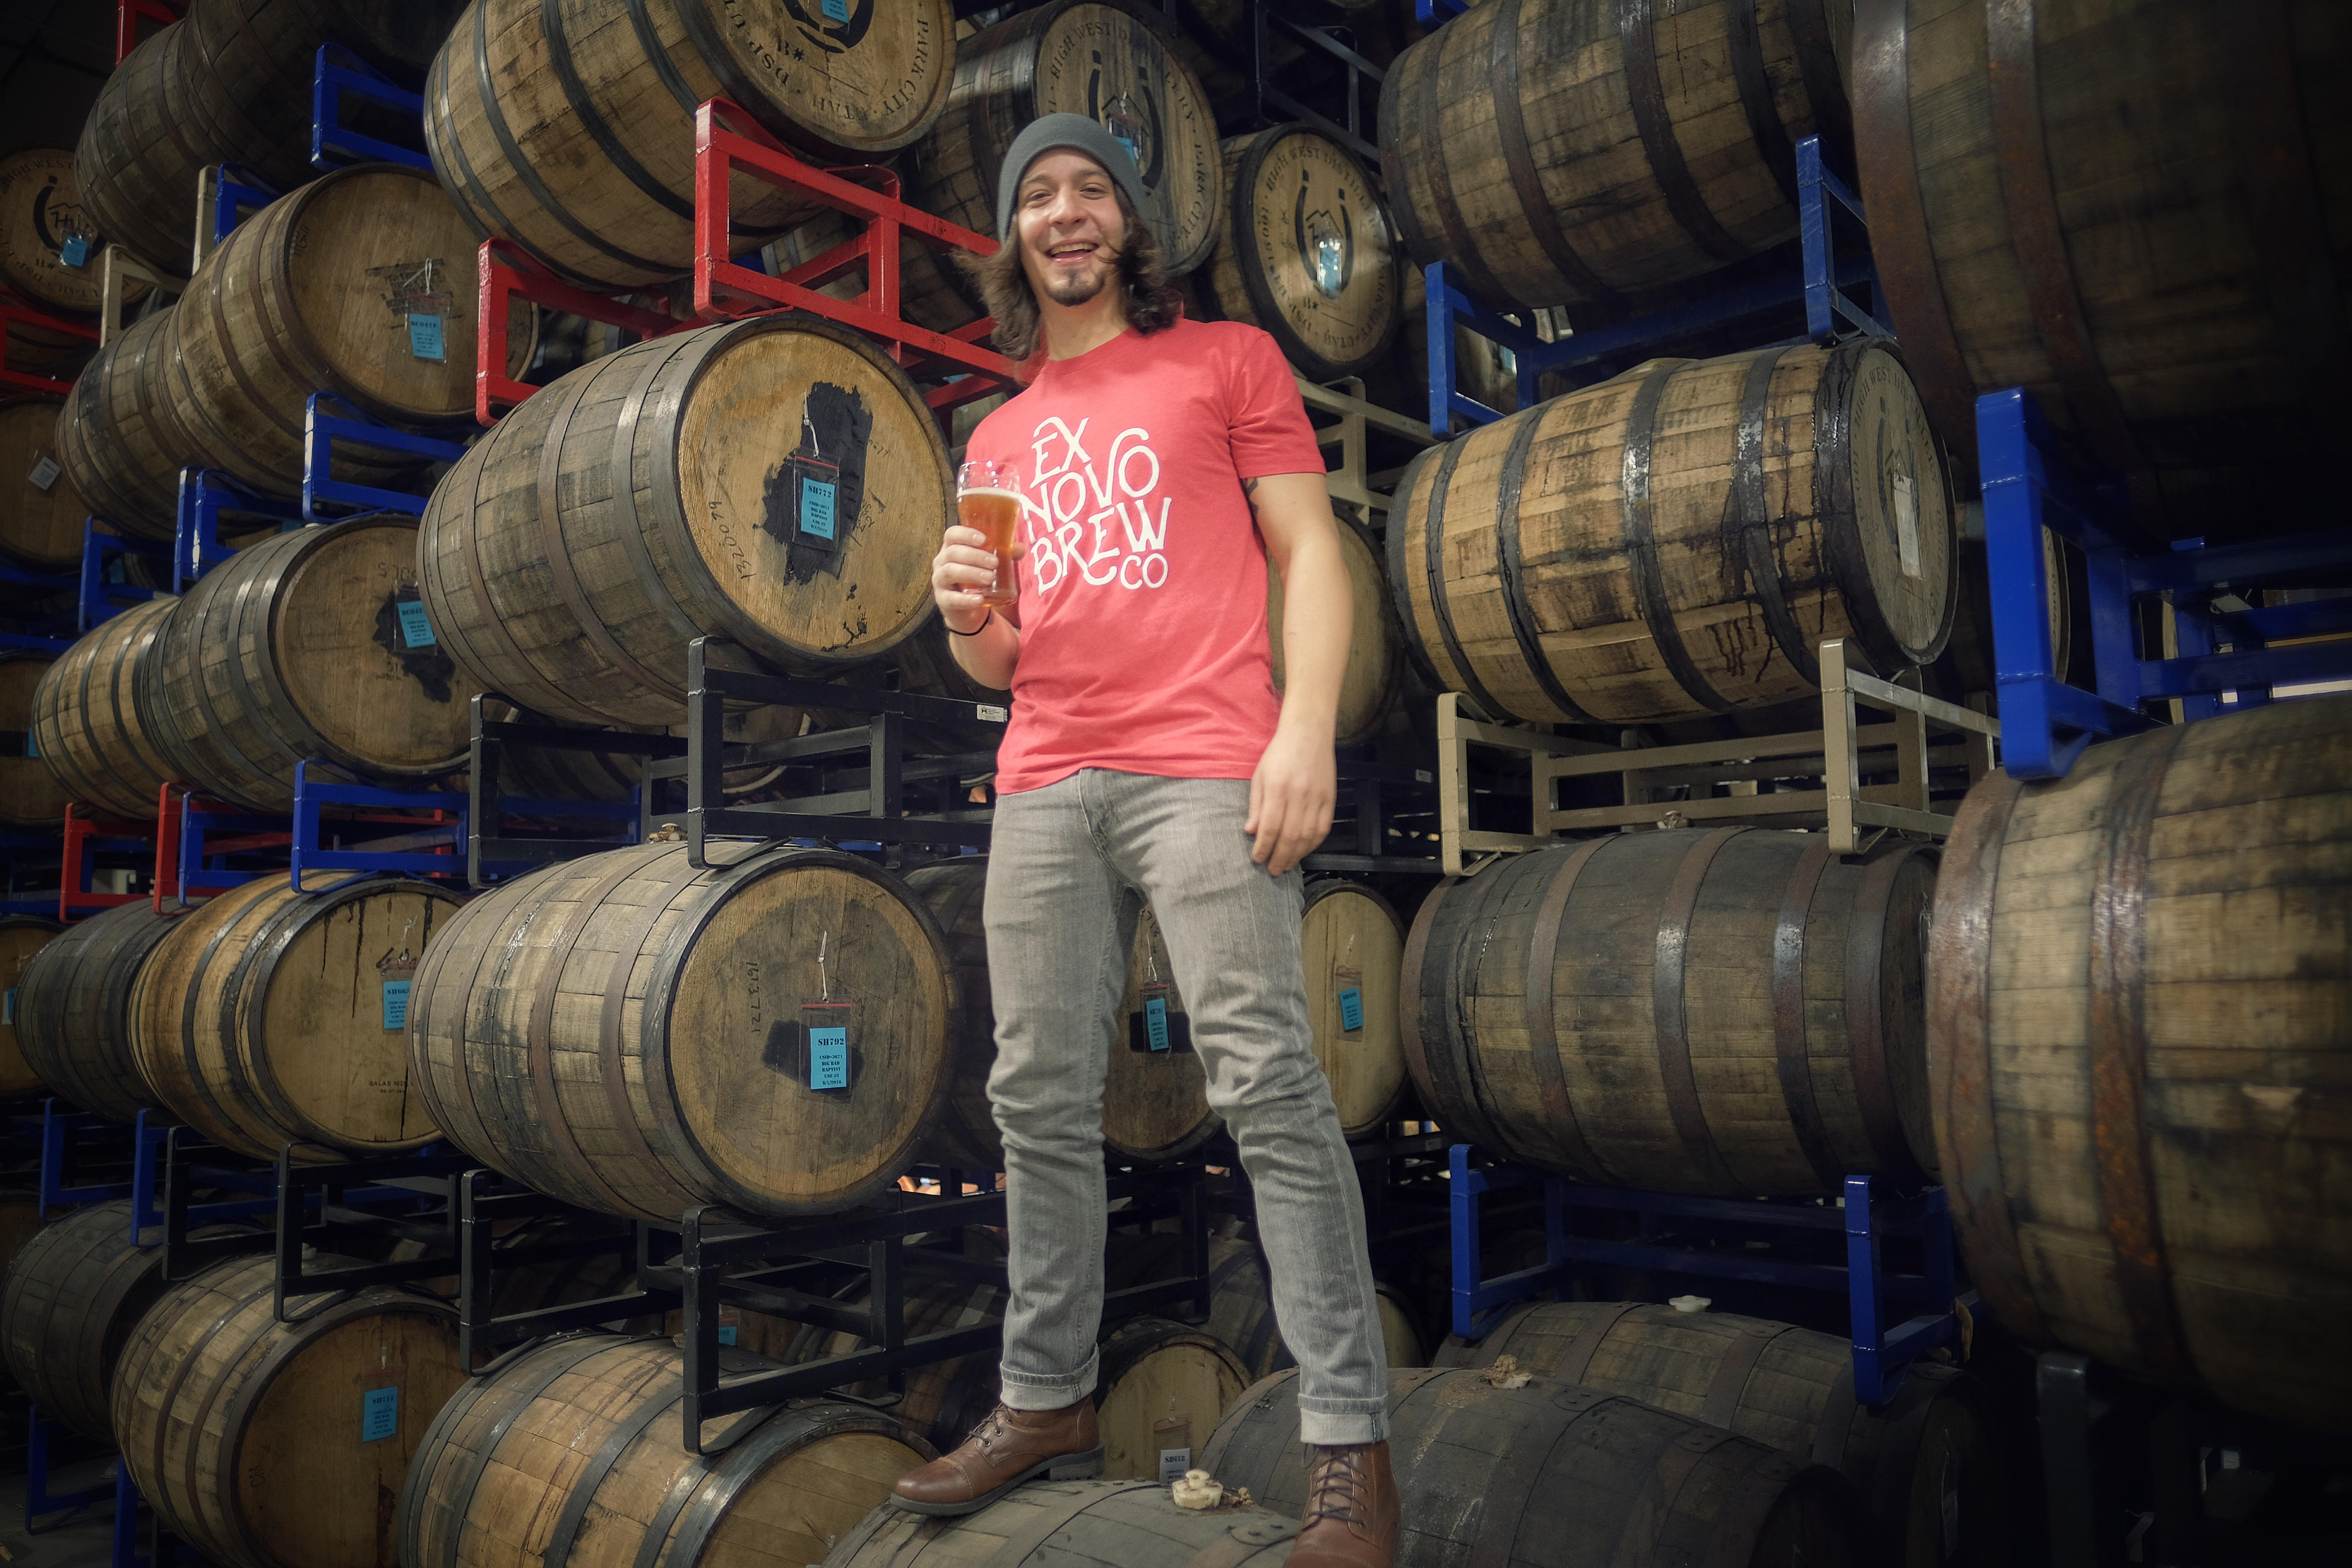 Ryan Buxton takes over as Head Brewer at Ex Novo Brewing in Portland, Oregon. (image courtesy of Ex Novo Brewing)